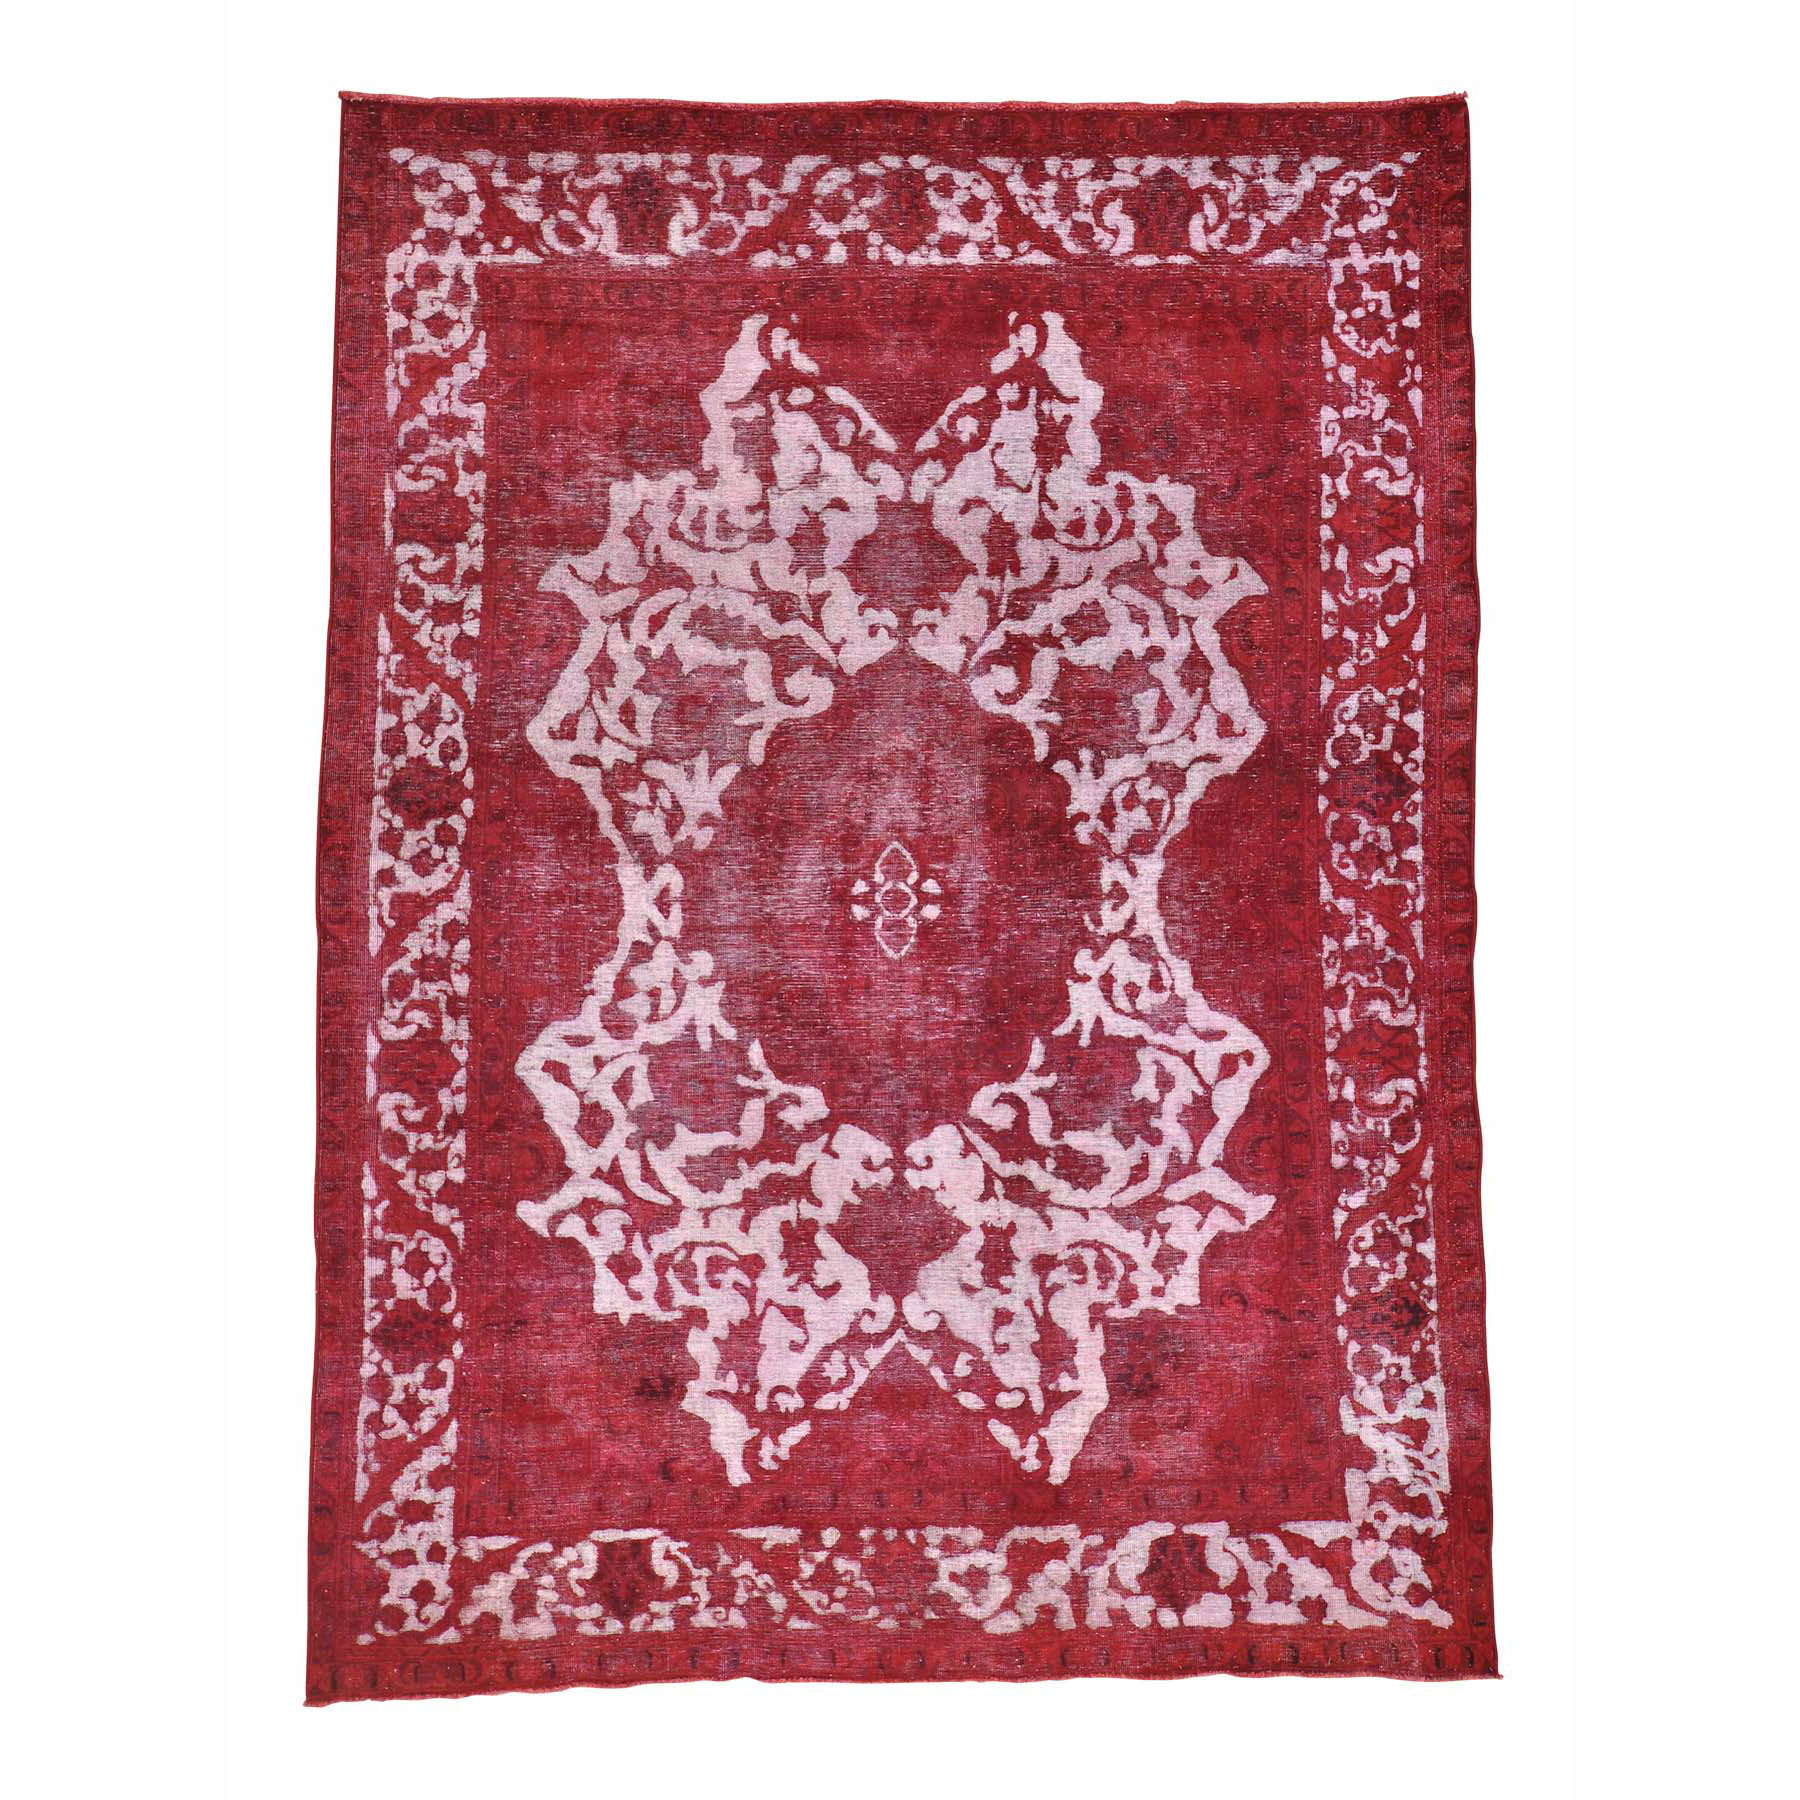 8'X11' Pure Wool Handmade Red Overdyed Persian Tabriz Barjasta Vintage Rug moabe0ca